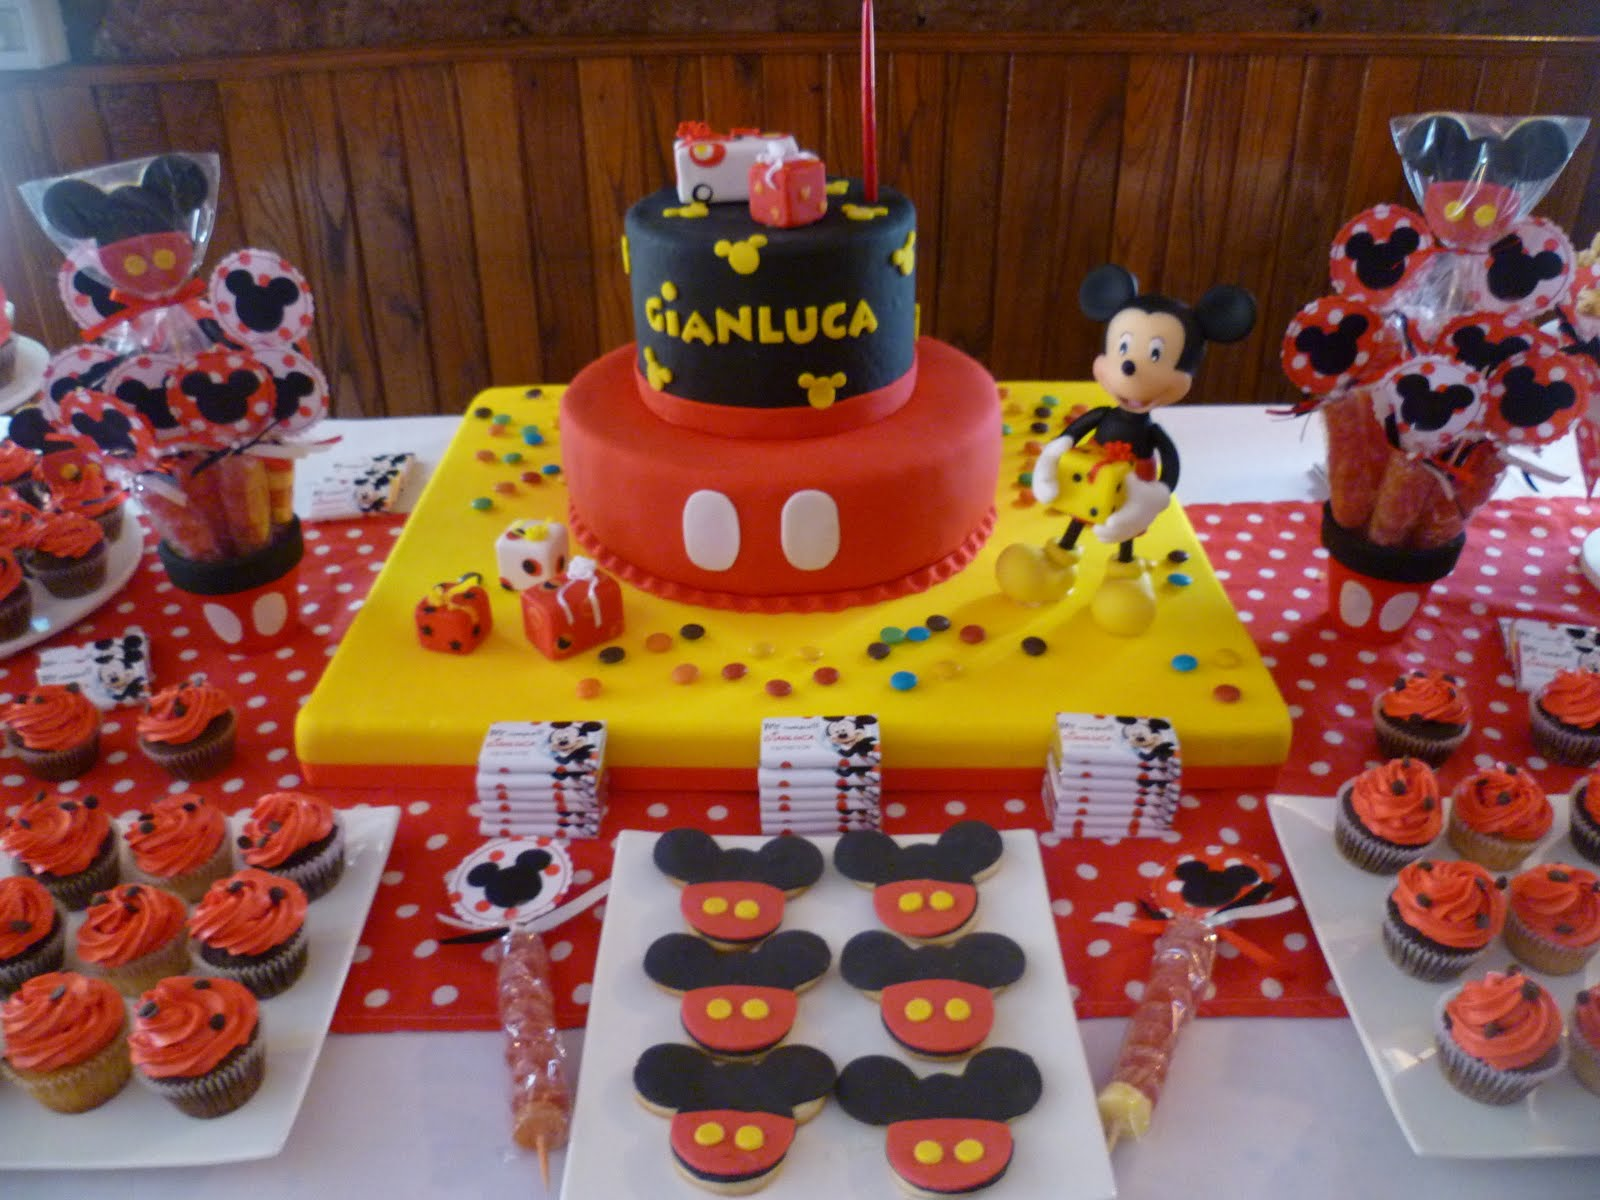 Sweet Party Box: CuMplEaÑos GiAnlUcA: Mickey Mouse